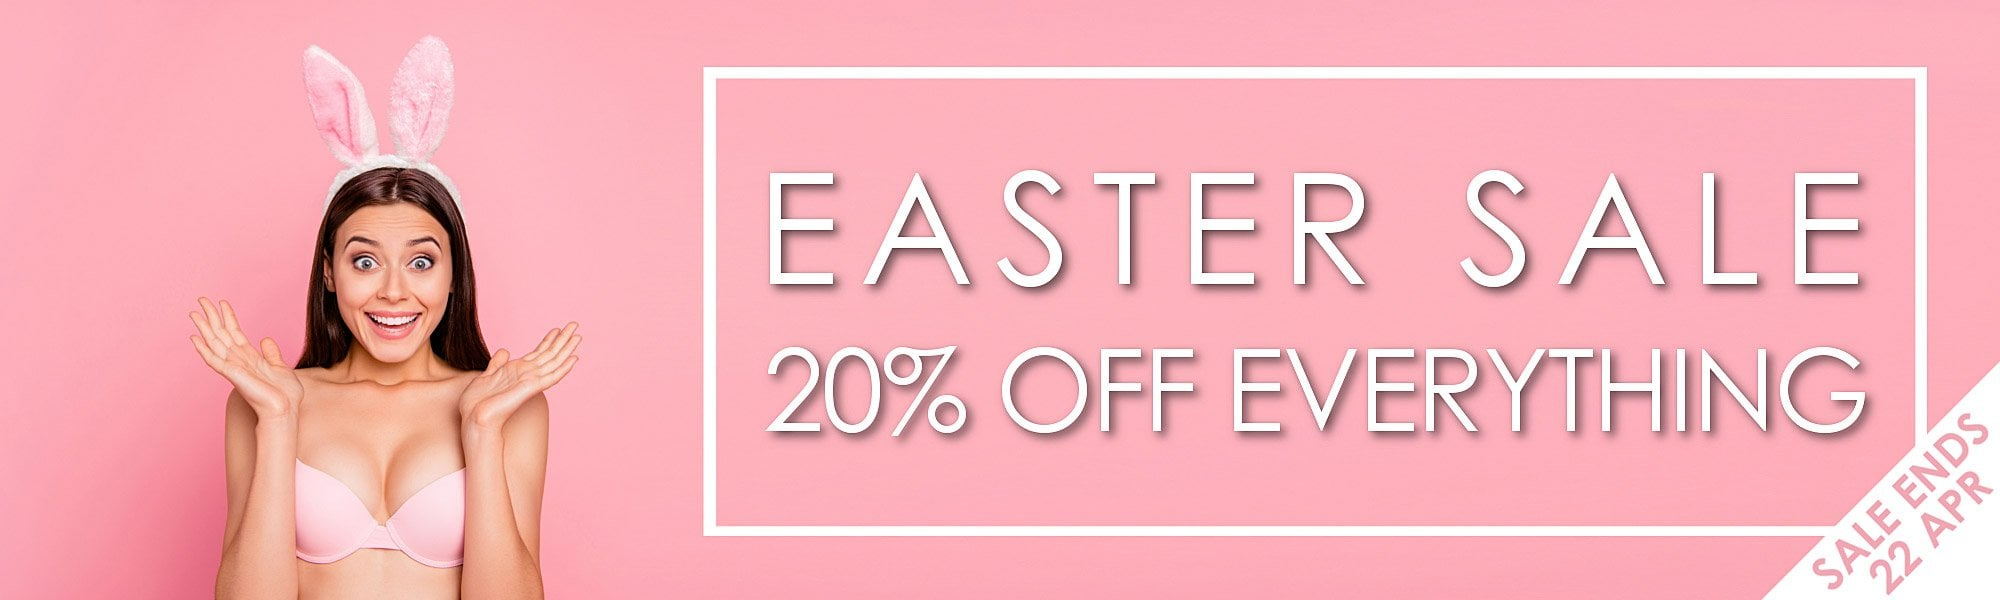 SHOP EASTER SALE